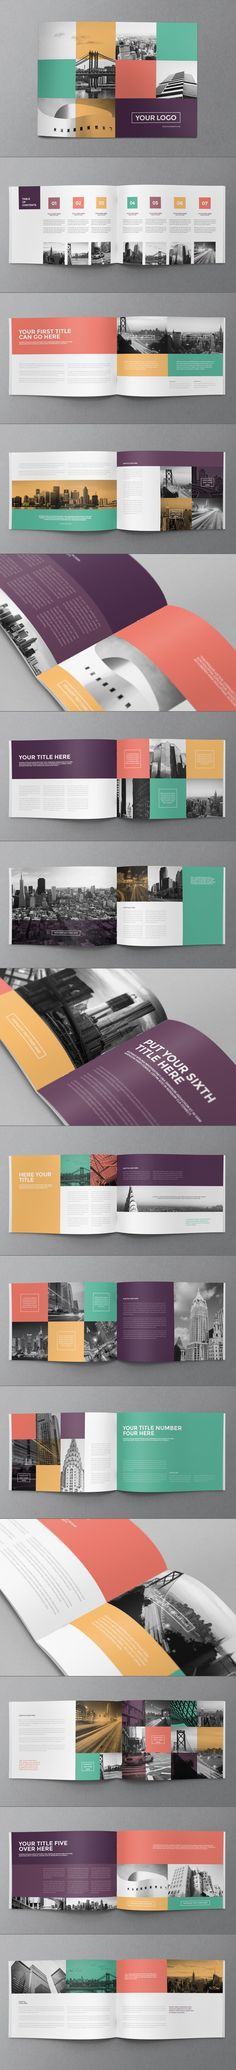 Colorful Squares Brochure. Download here: http://graphicriver.net/item/colorful-squares-brochure/8982919?ref=abradesign #brochure #design #editorial